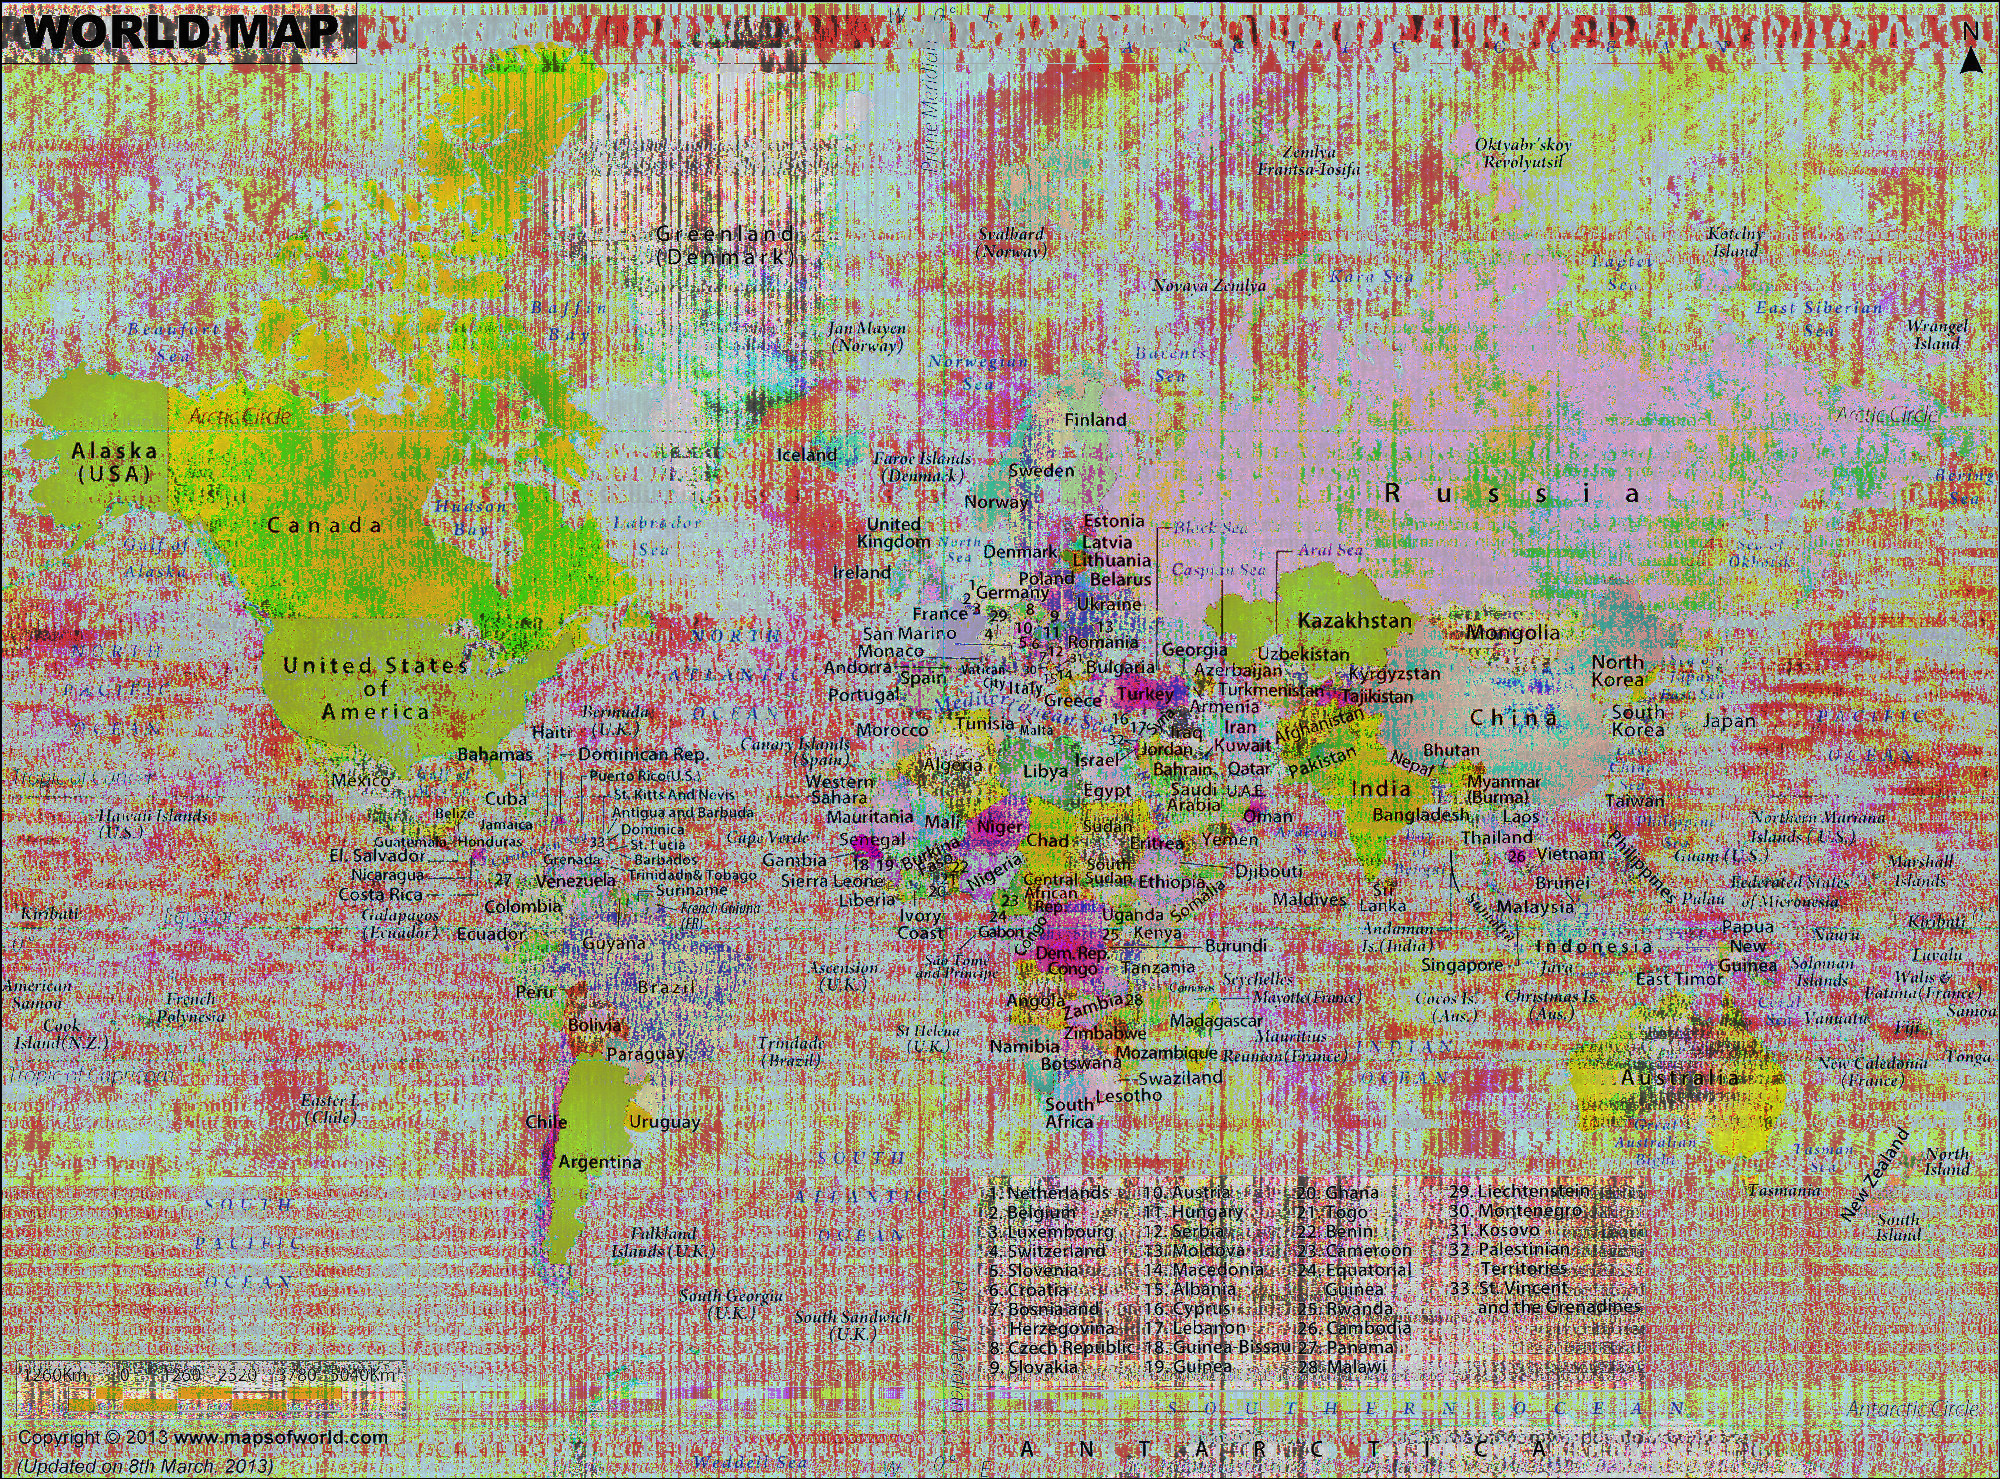 World Map, Sonification reverb effect interleaved